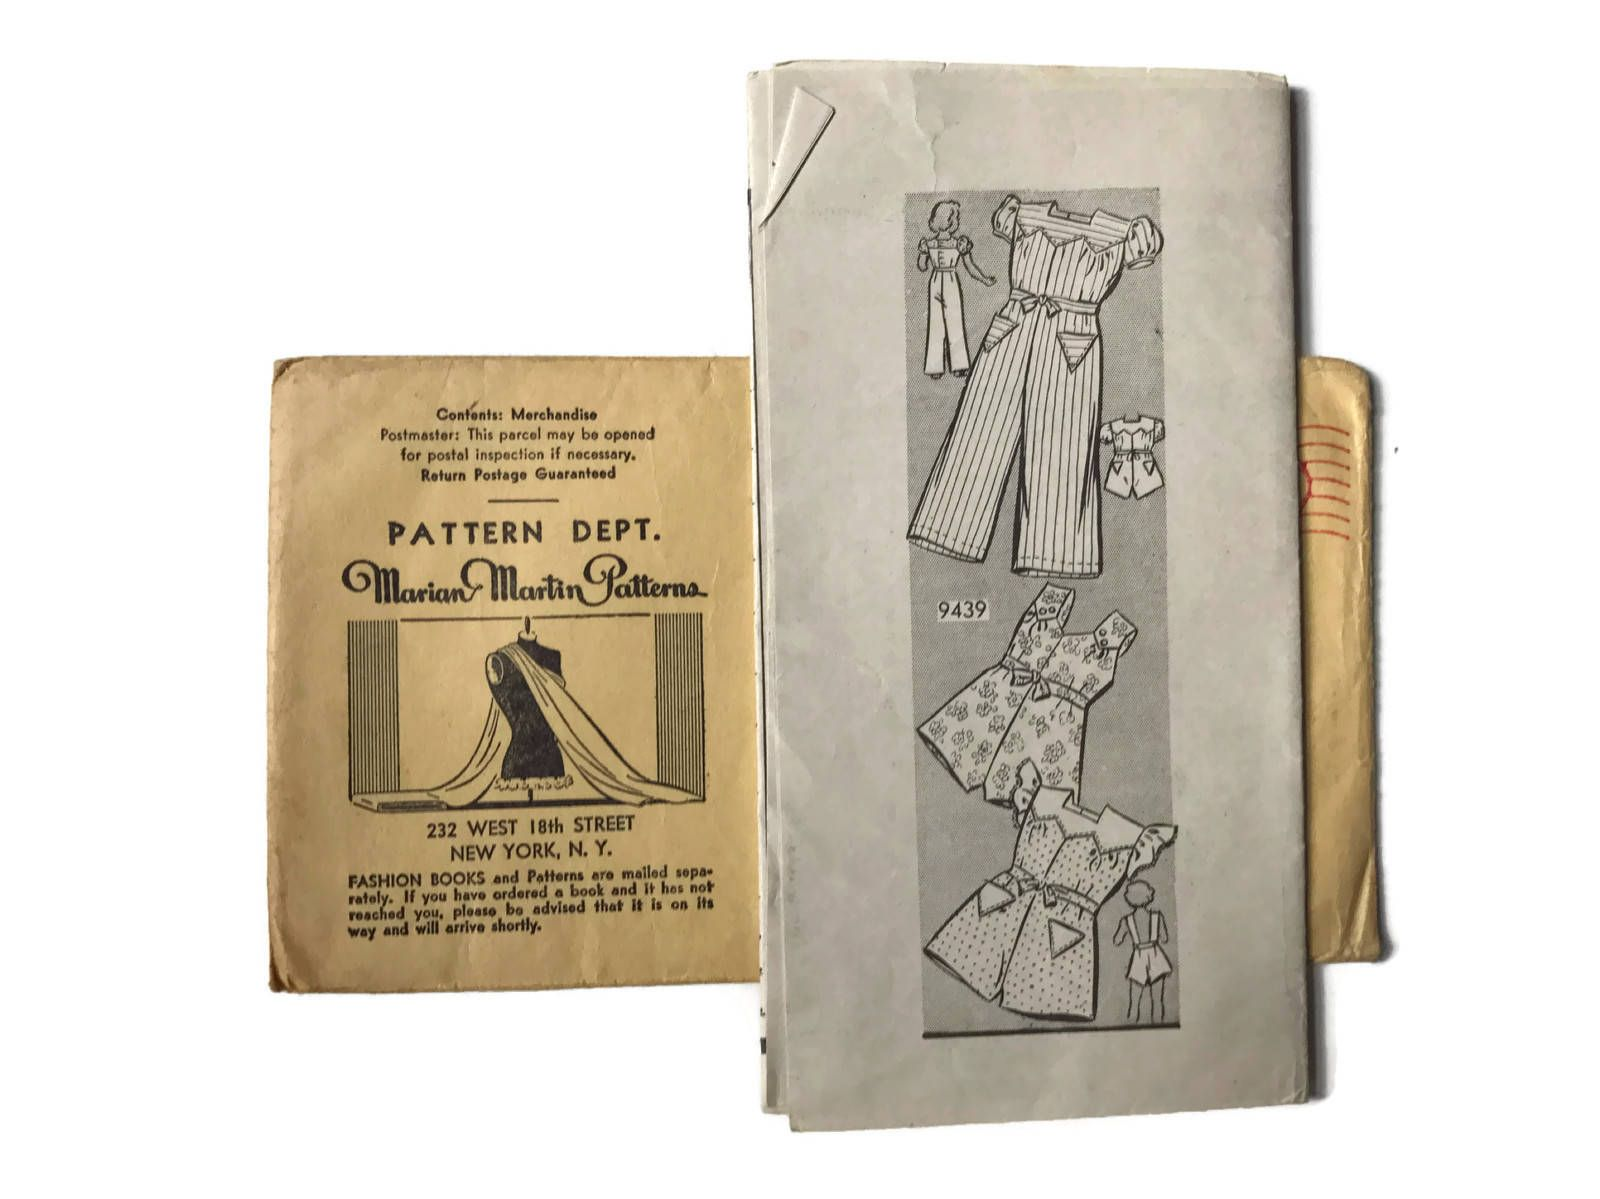 Excited to share the latest addition to my #etsy shop: Vintage Sewing Pattern Marian Martin Patterns 1940s Child Size 2 Overalls Number 9439 Unprinted Pattern Unused Factory Folds Instructions http://etsy.me/2BL21I4 #supplies #sewing #sewingpatttern #mailorderpattern #